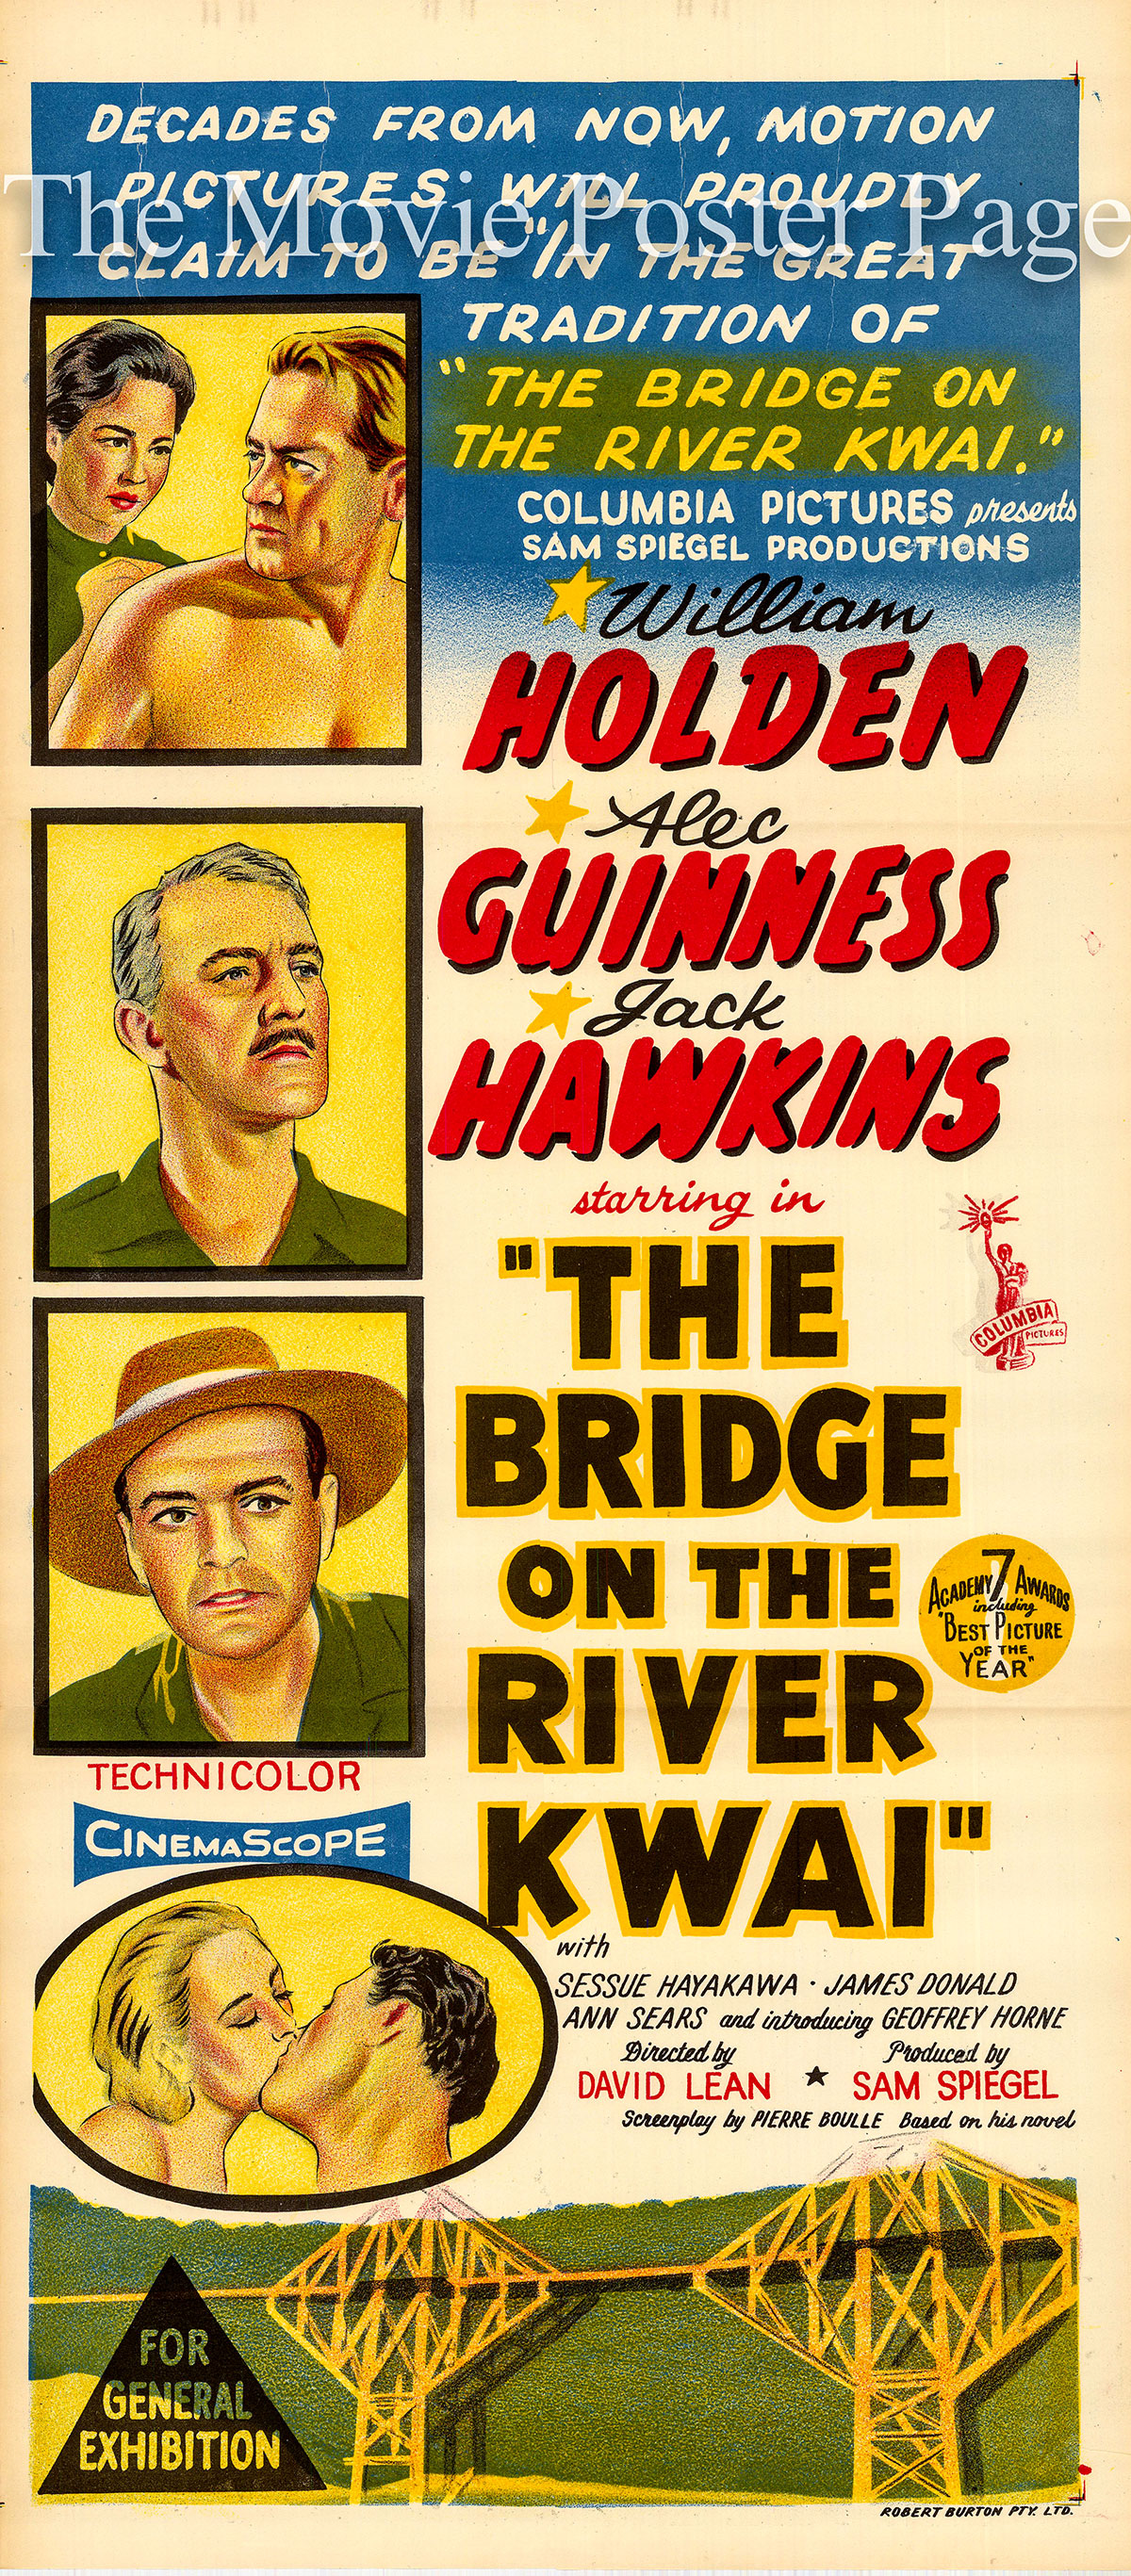 Pictured is an Australian daybill poster for the 1958 David Lean film The Bridge on the River Kwai.